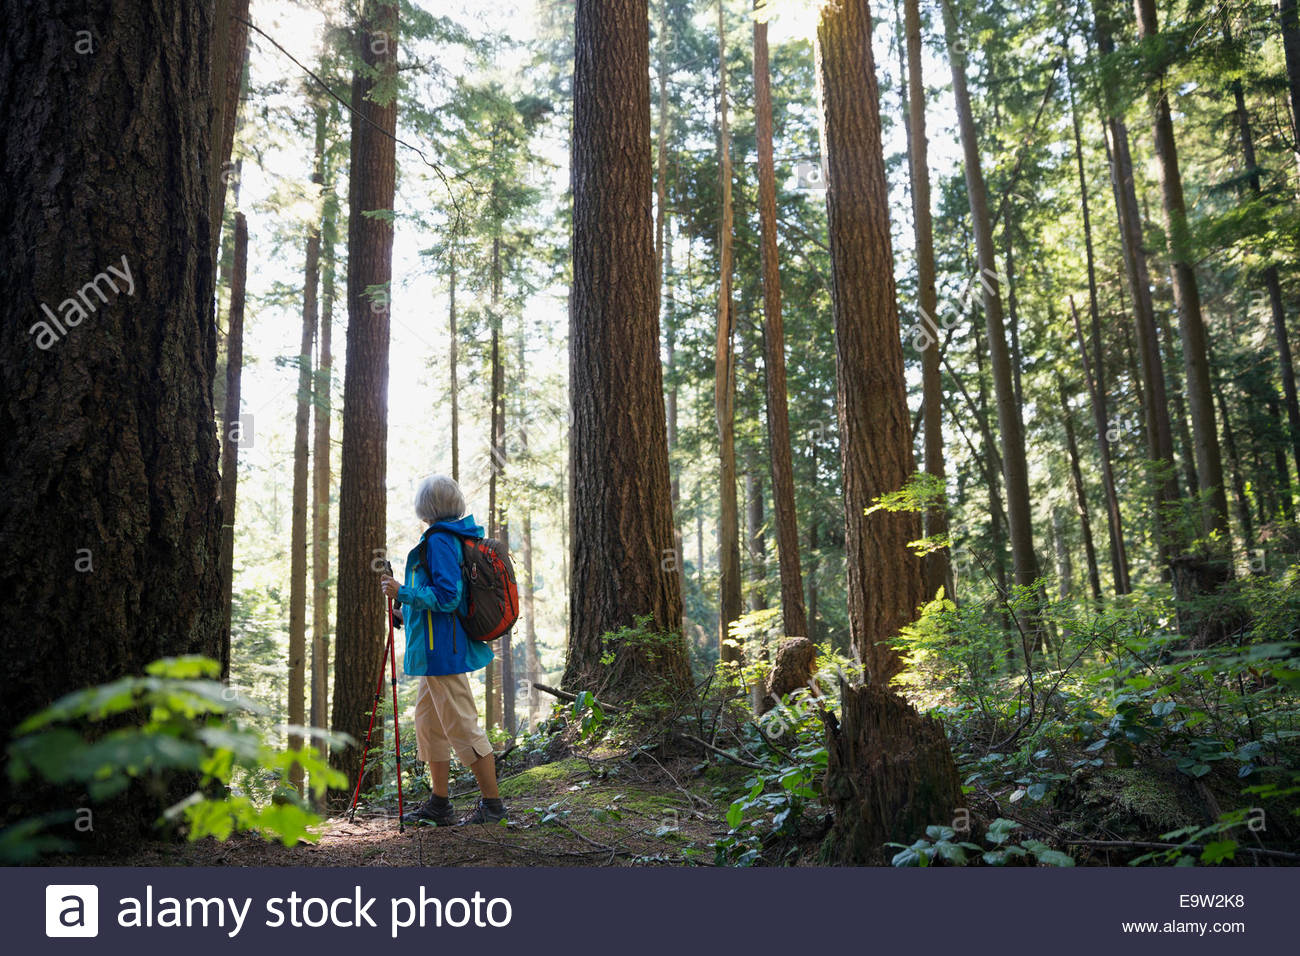 Senior woman hiking among trees in woods - Stock Image